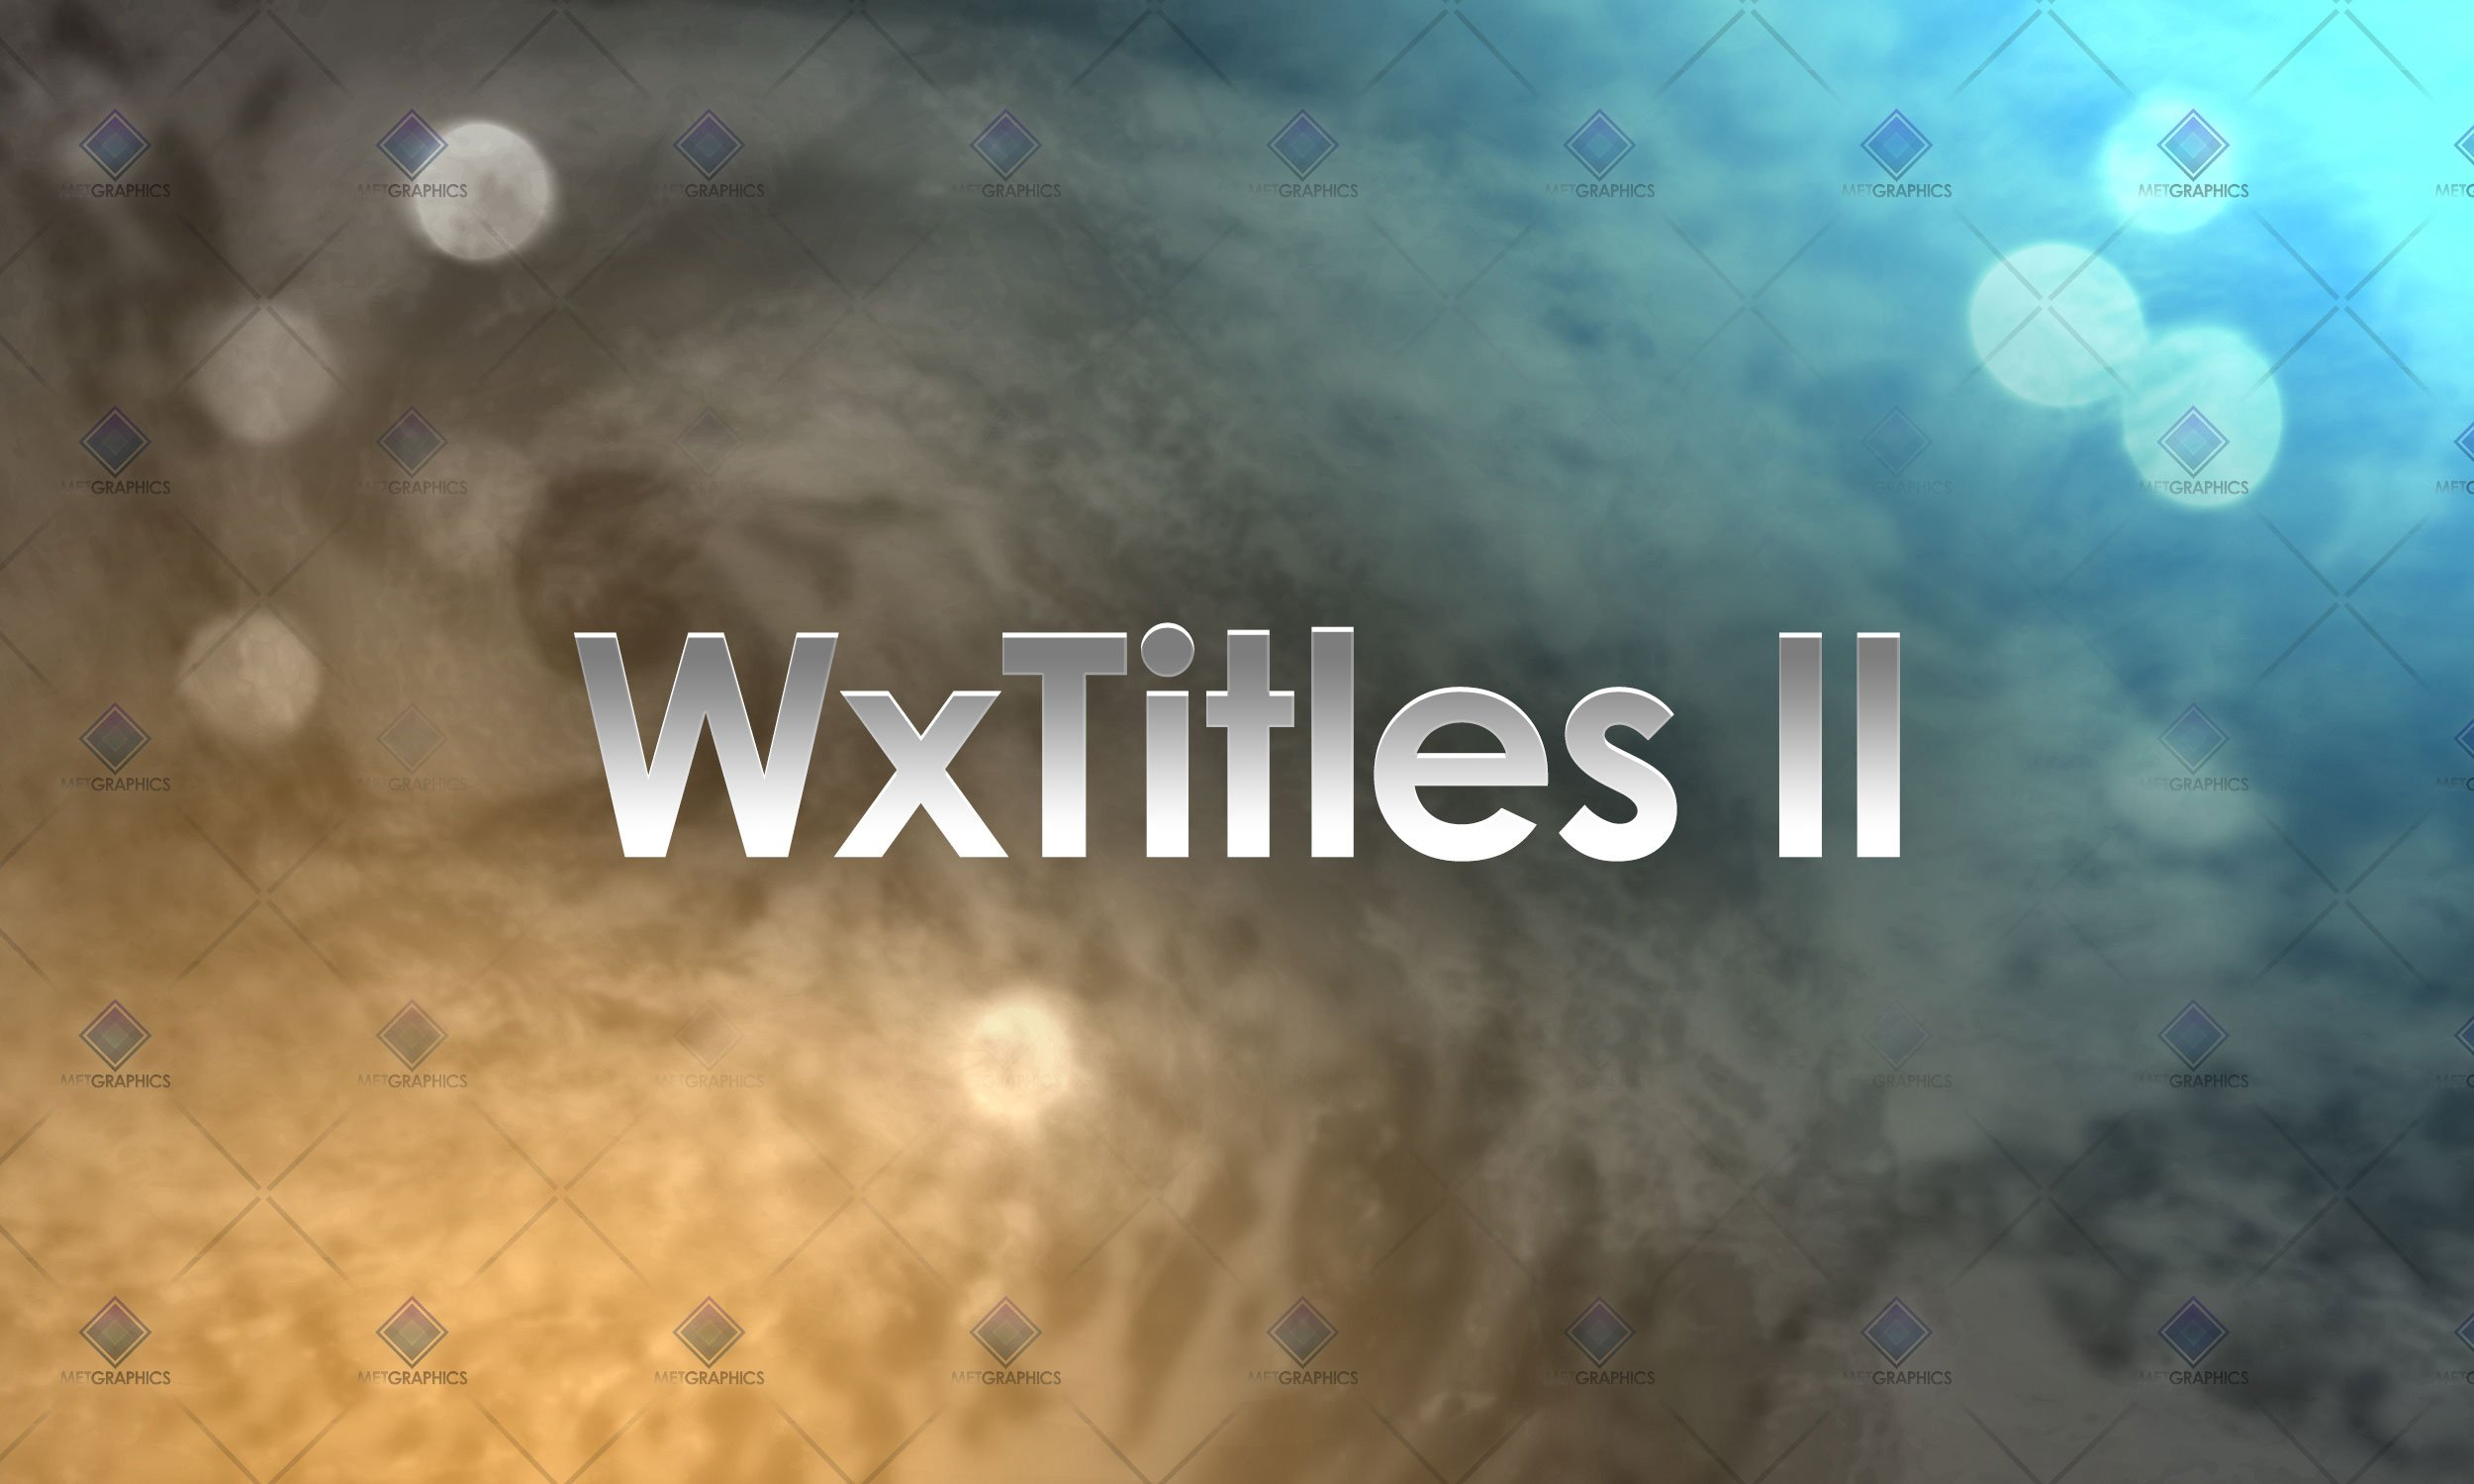 WxTitles Cover II